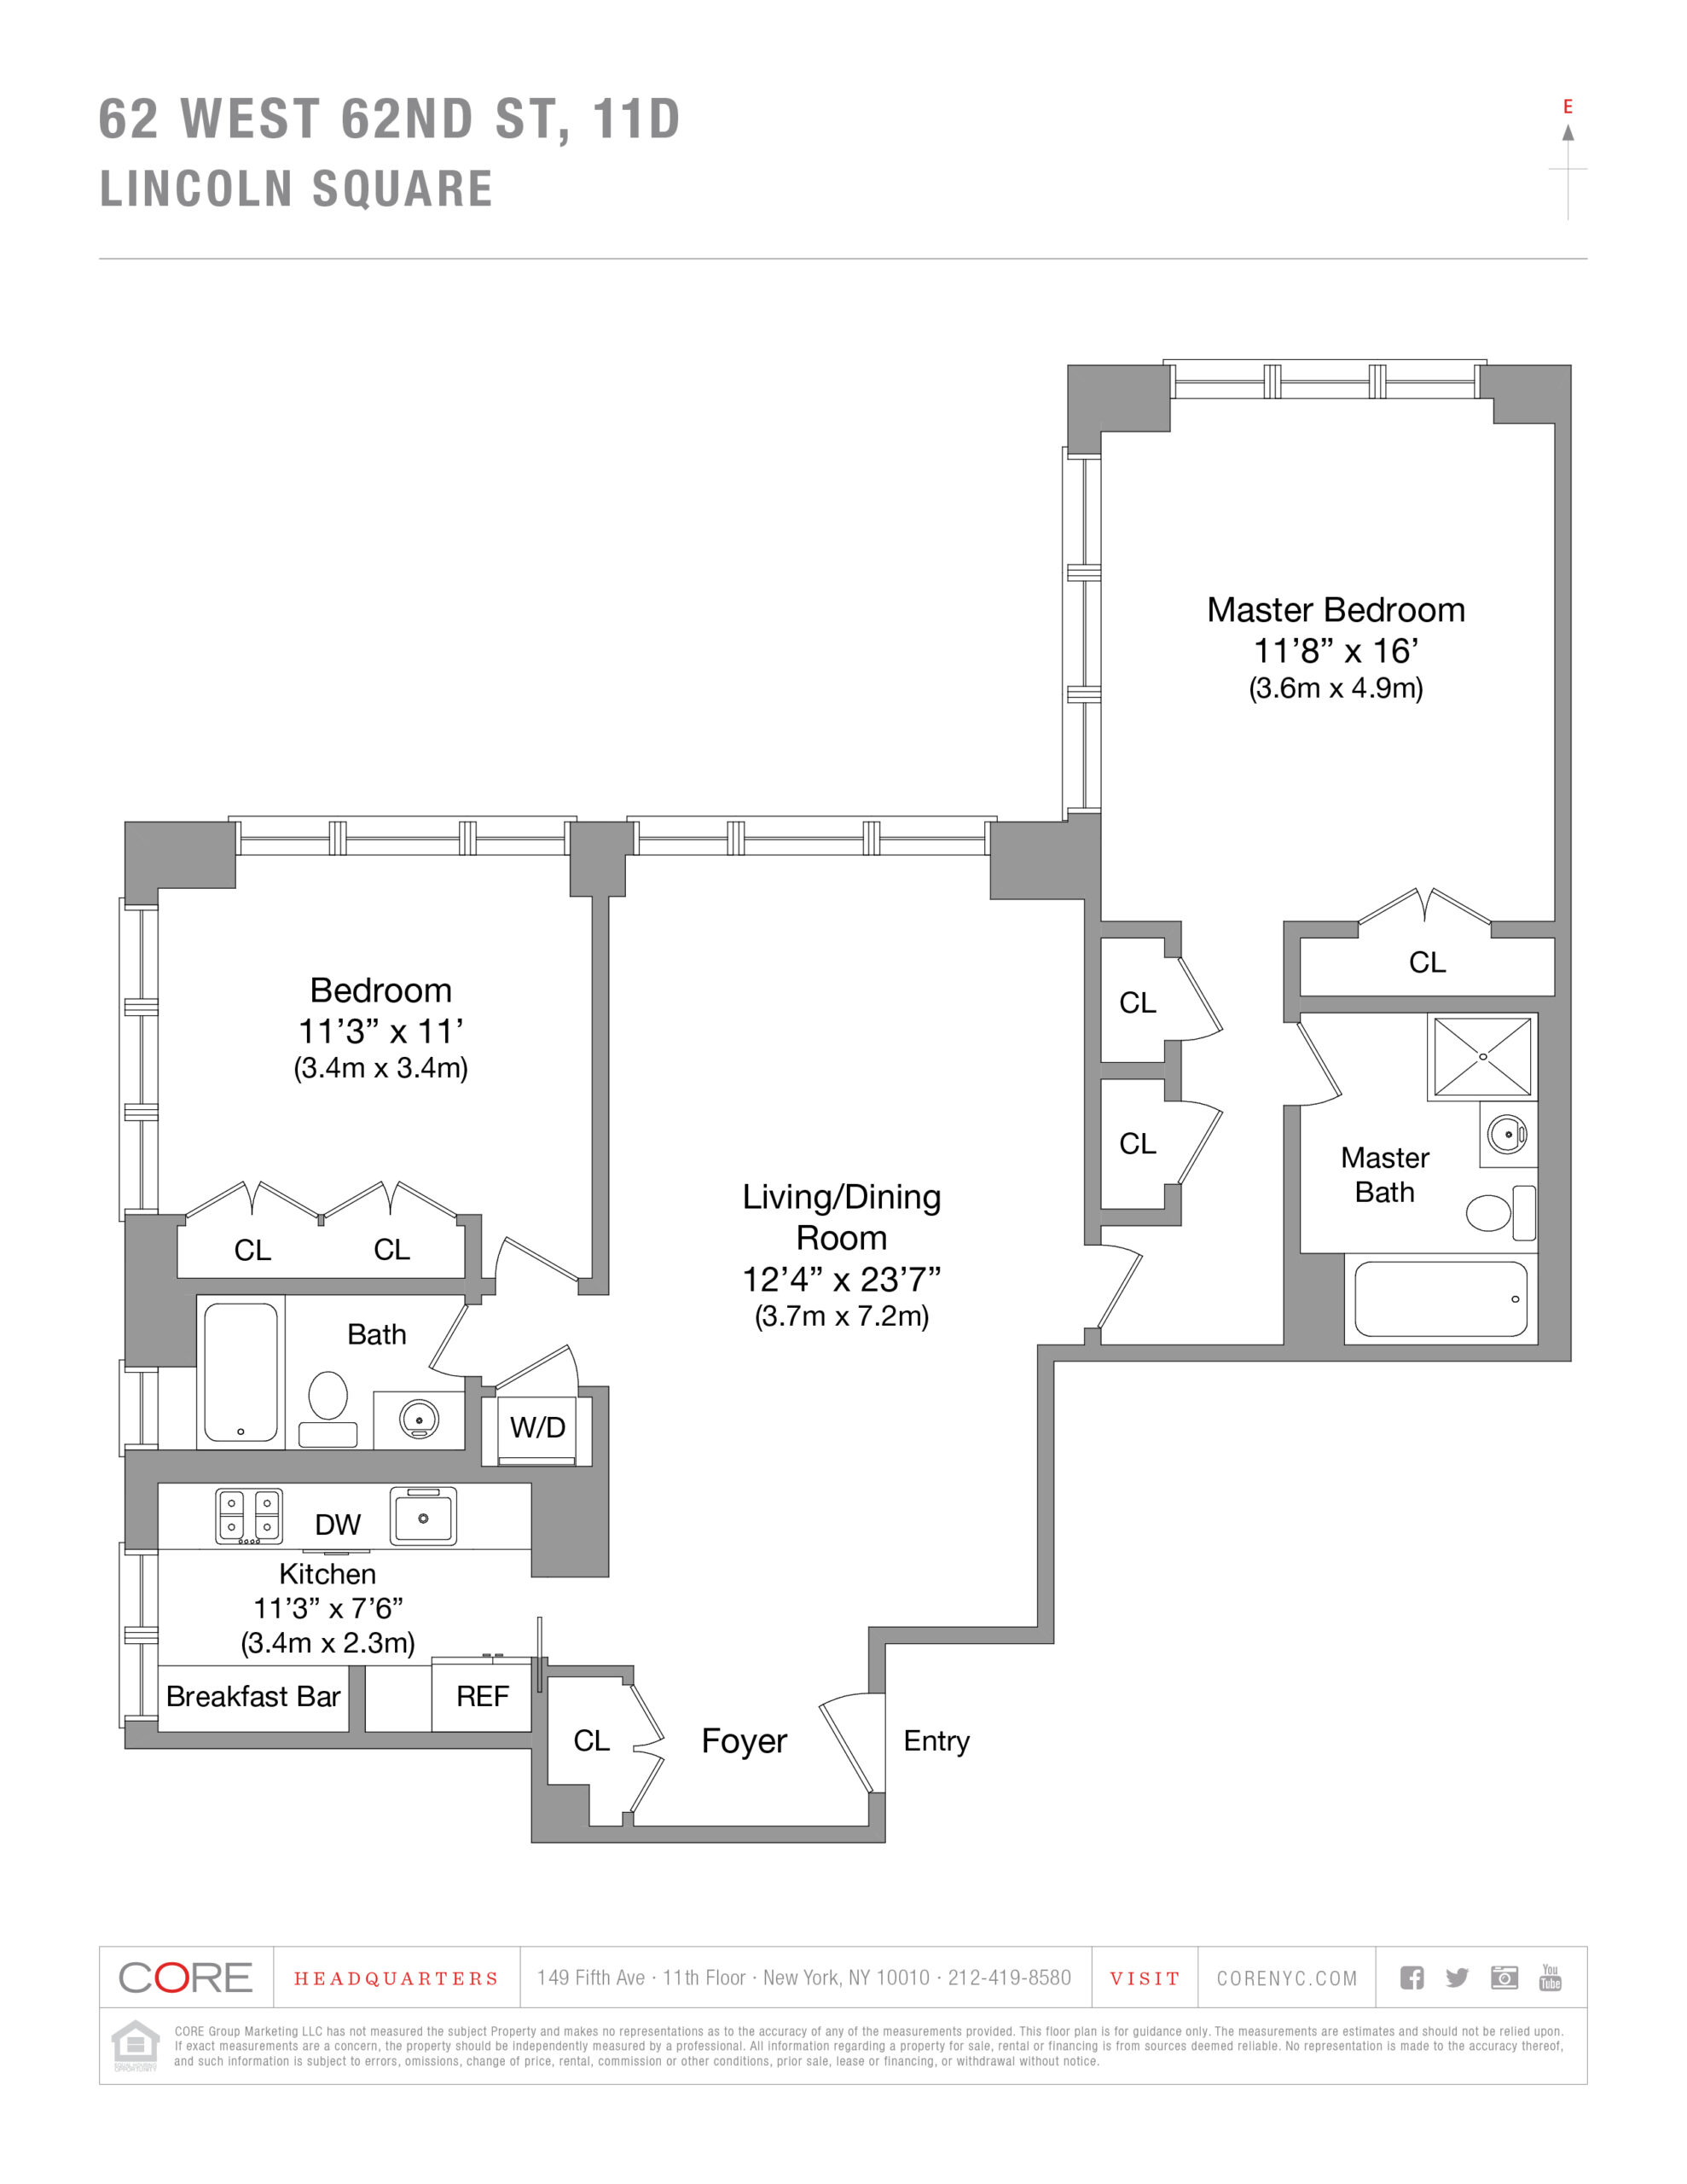 62 West 62nd St. 11D, New York, NY 10023